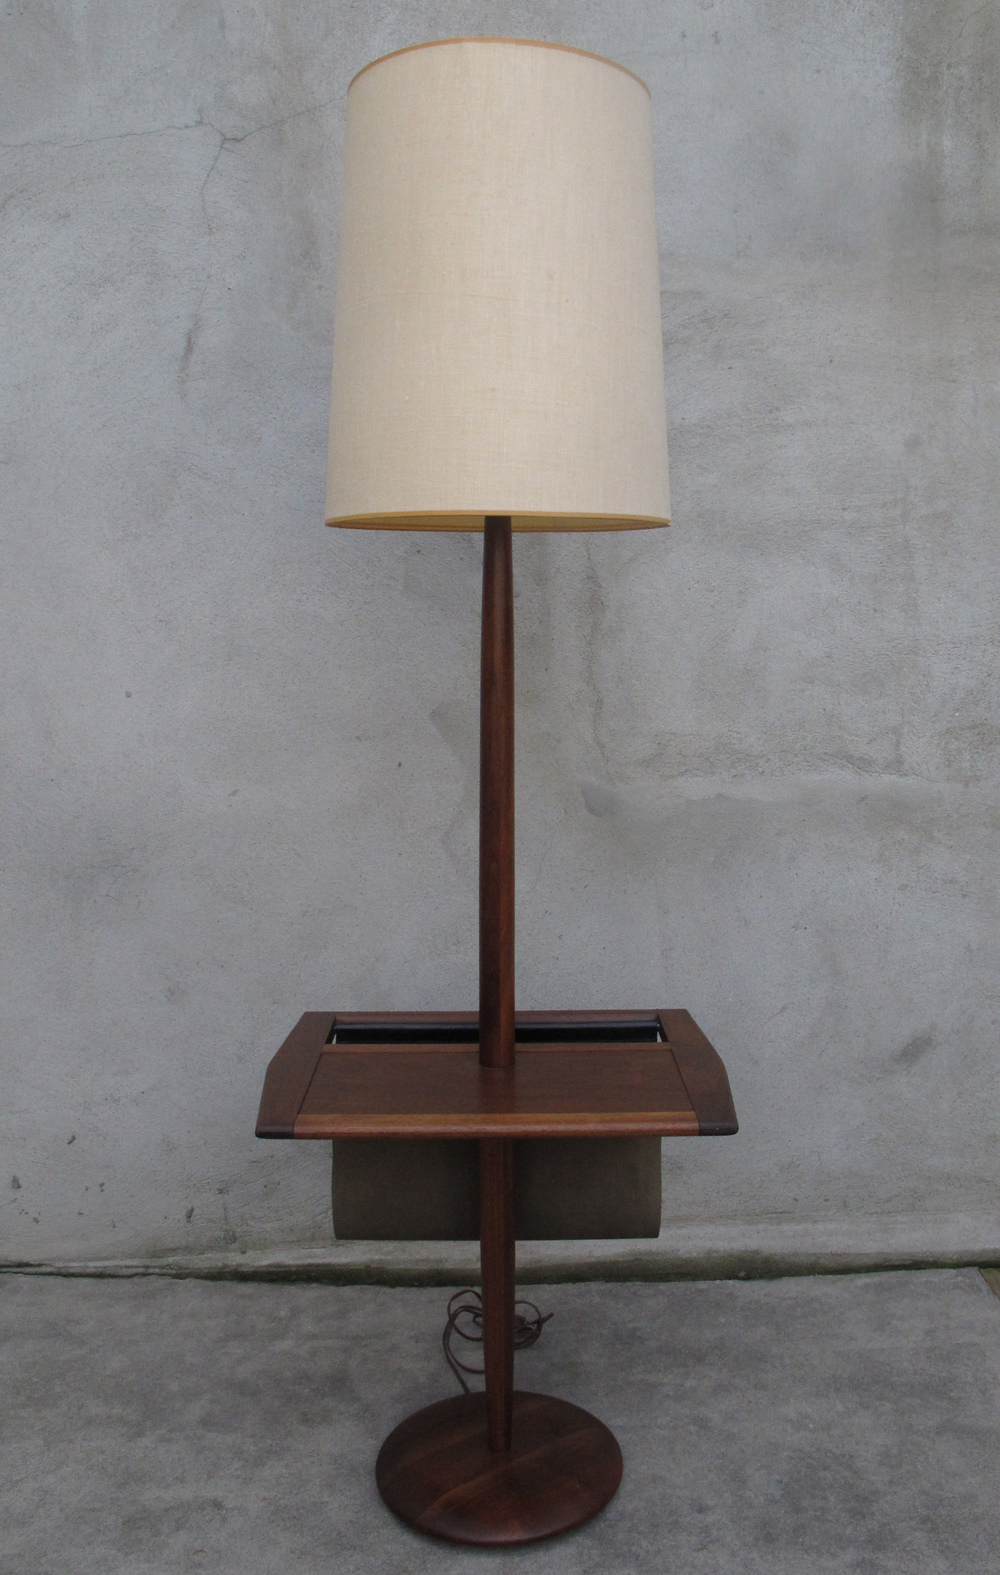 MID CENTURY LAUREL LAMP TABLE WITH MAGAZINE RACK